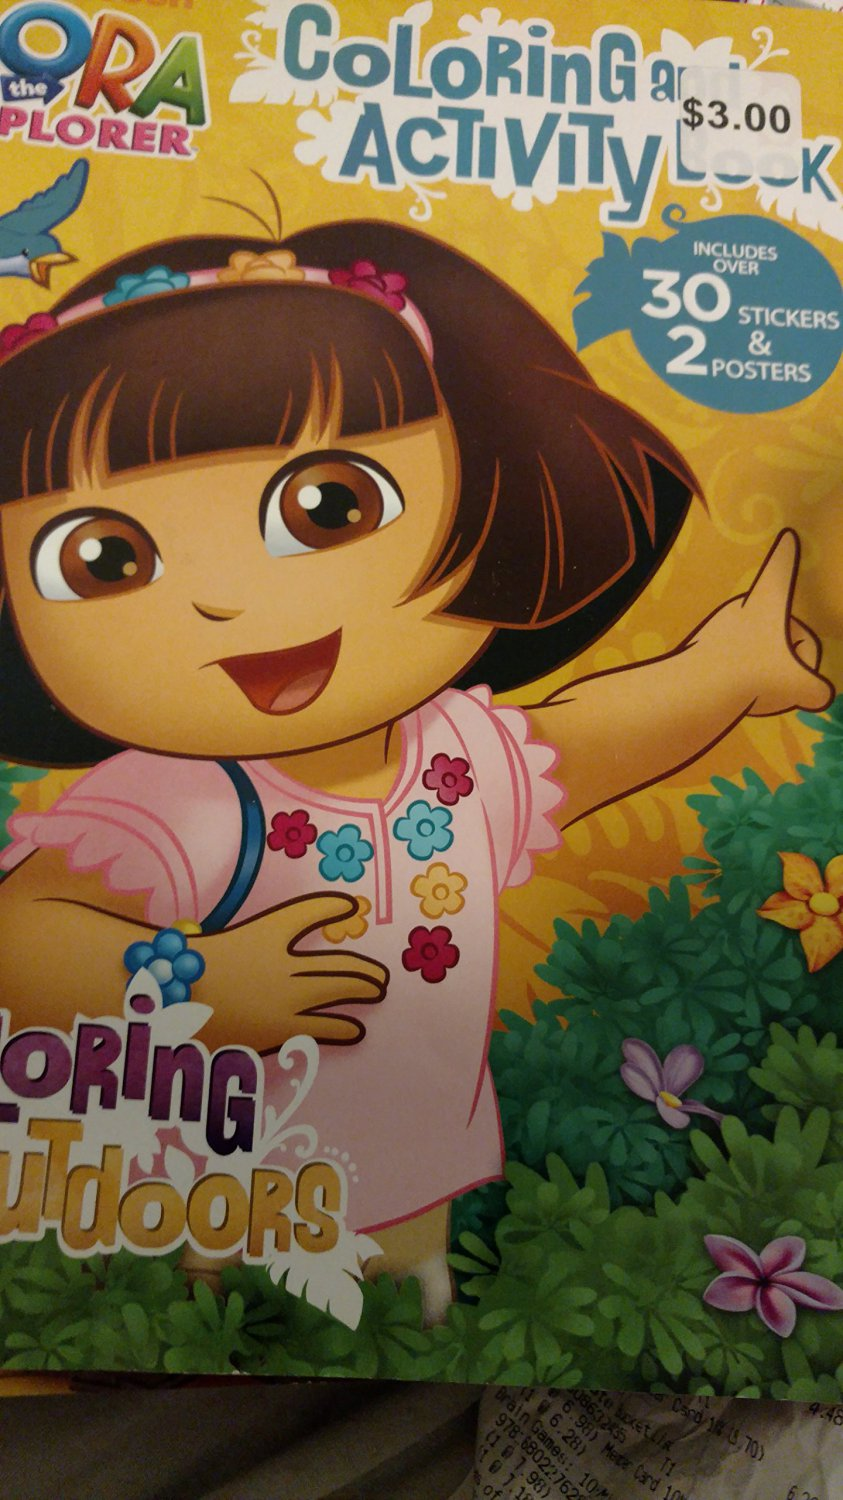 Dora the Explorer Coloring & Activity Book Exploring Outfoors (Includes 30 Stickers & 2 Posters)